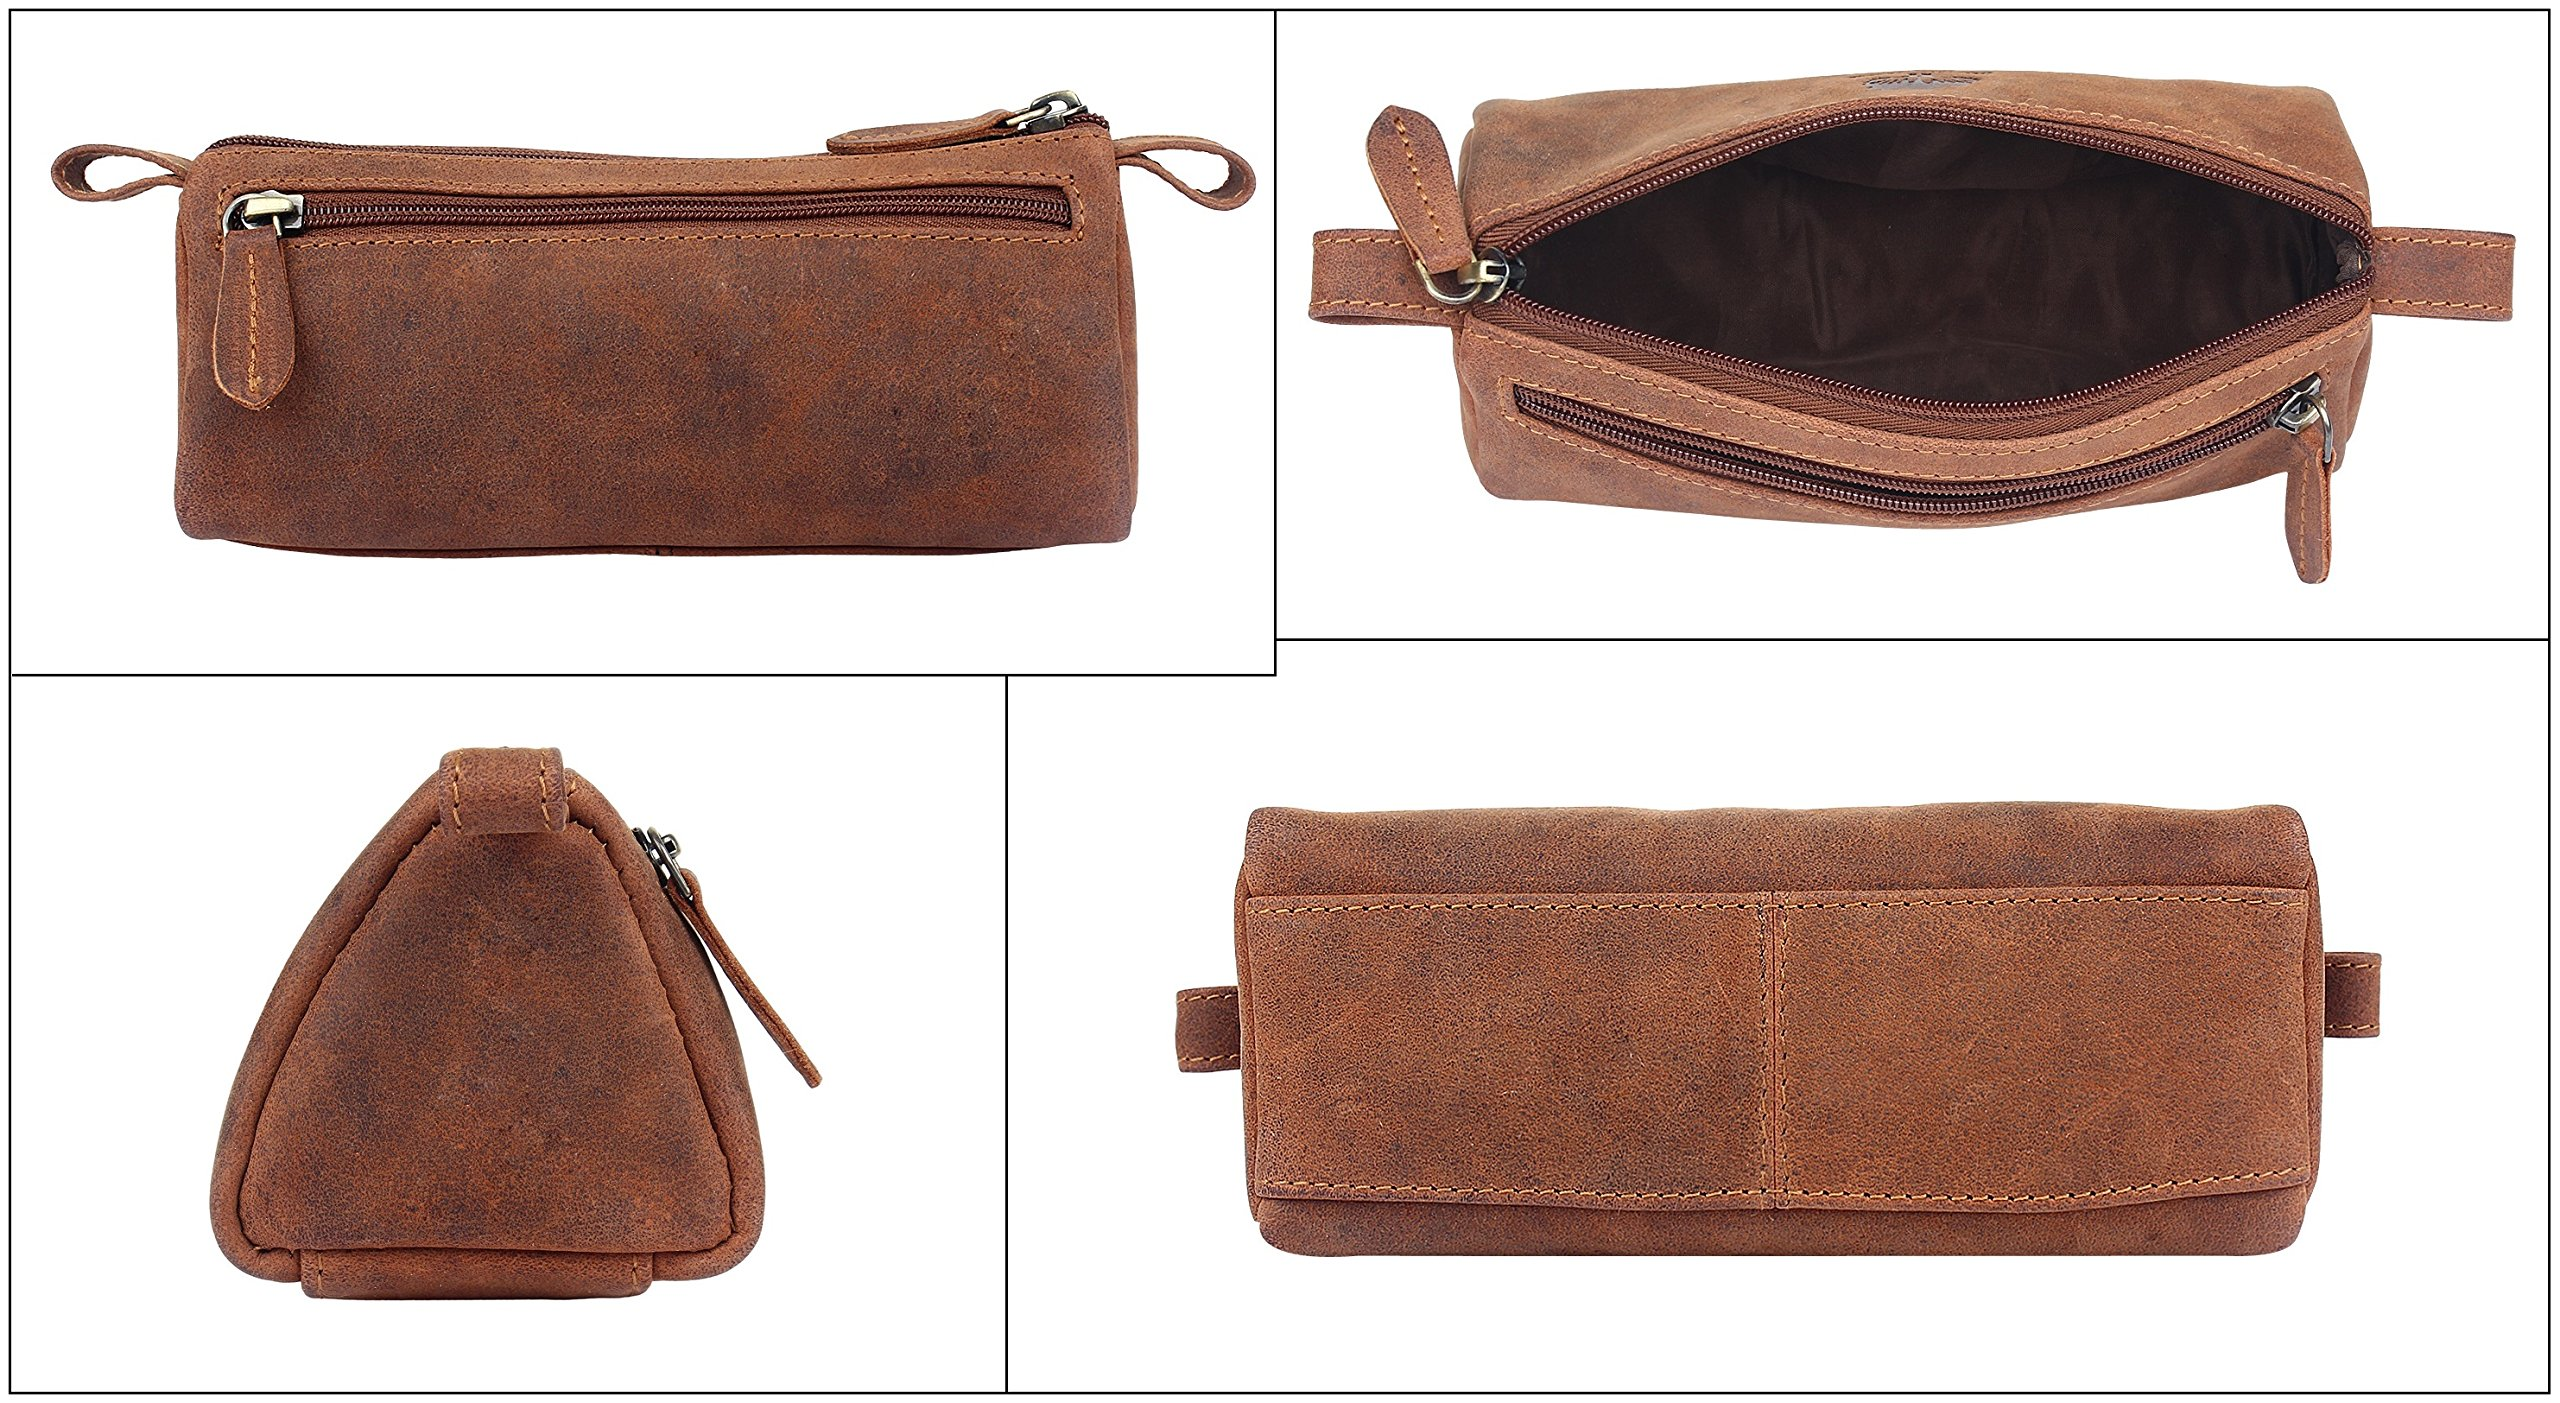 Leather Pencil Case - Zippered Pen Pouch for School, Work & Office by Rustic Town by RusticTown (Image #4)